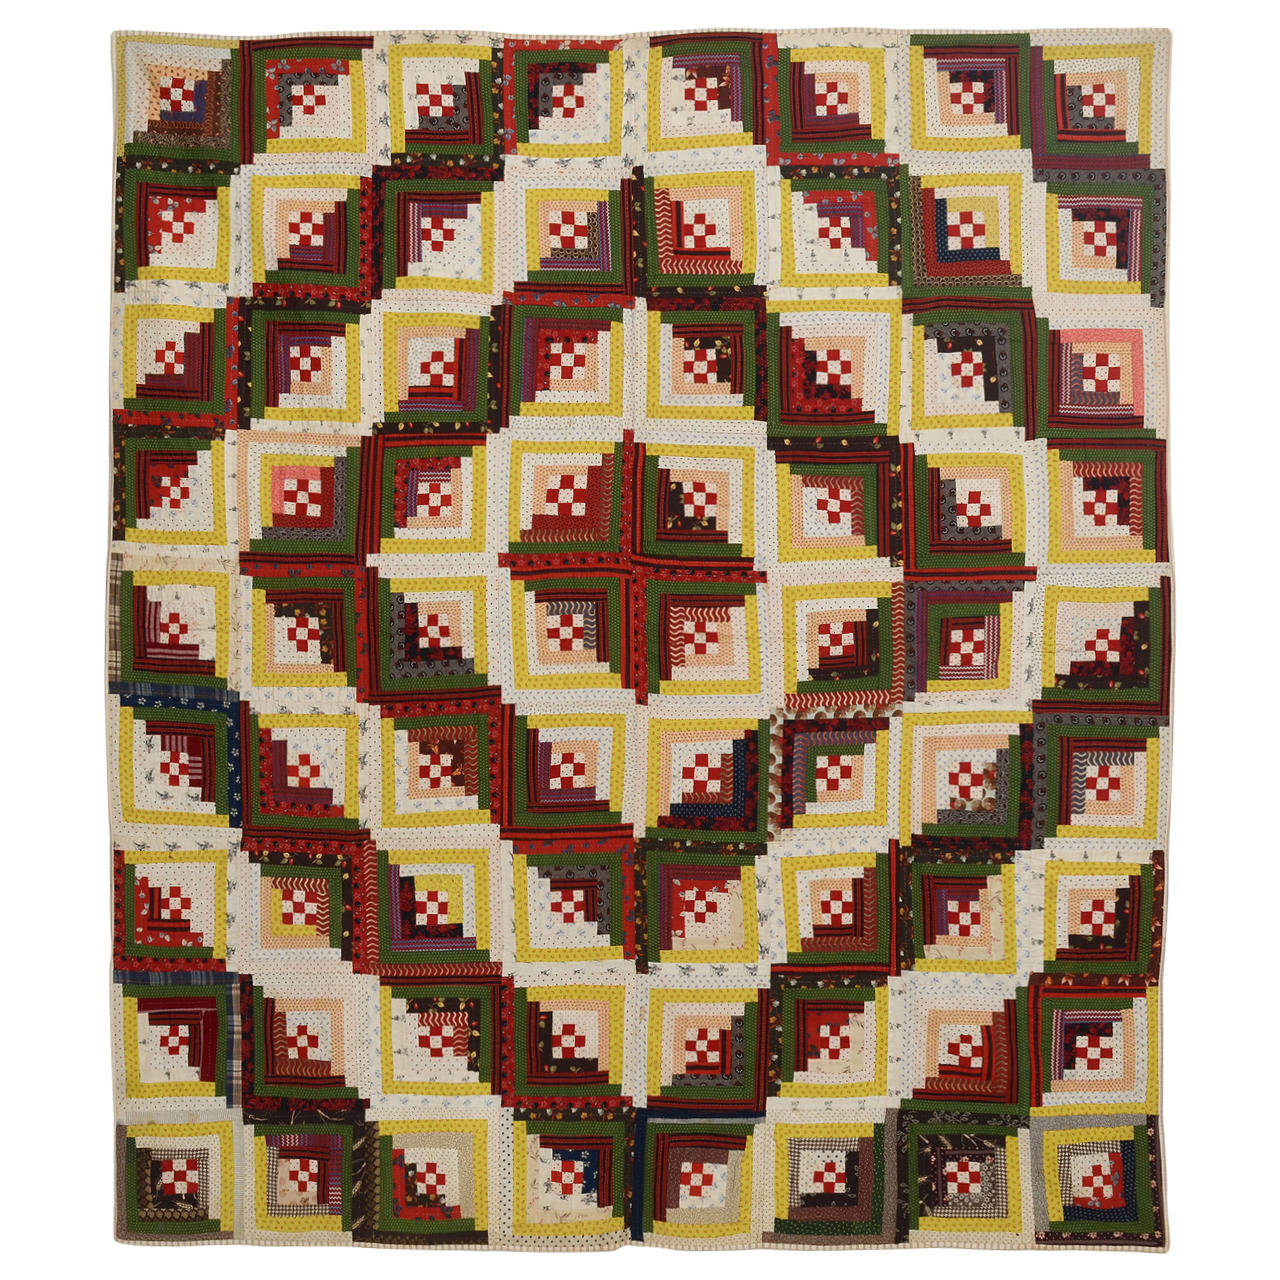 Very Impressive portraiture of Home > Furniture > Folk Art > Quilts with #A0872B color and 1280x1280 pixels